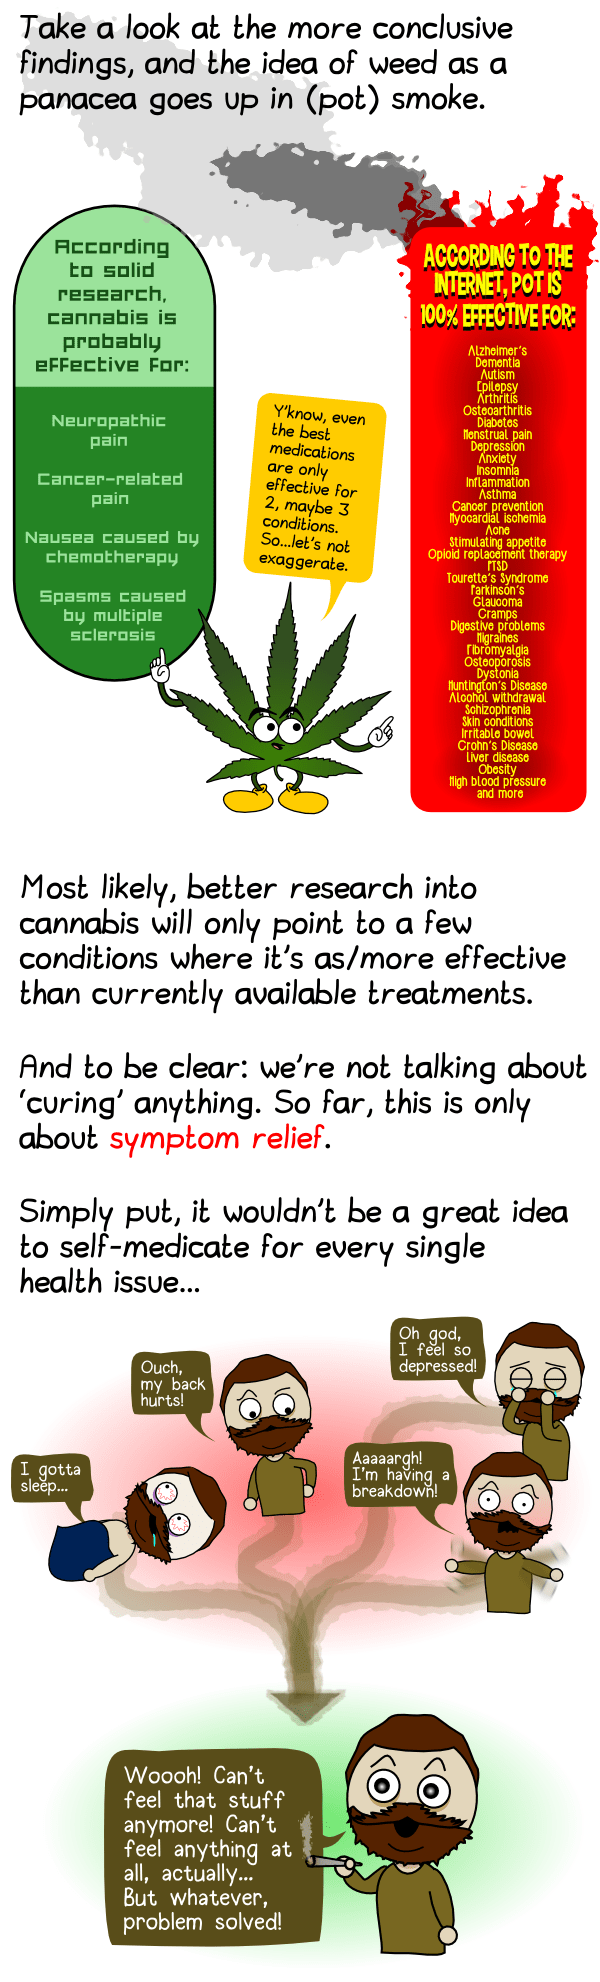 evidence-based medical cannabis use